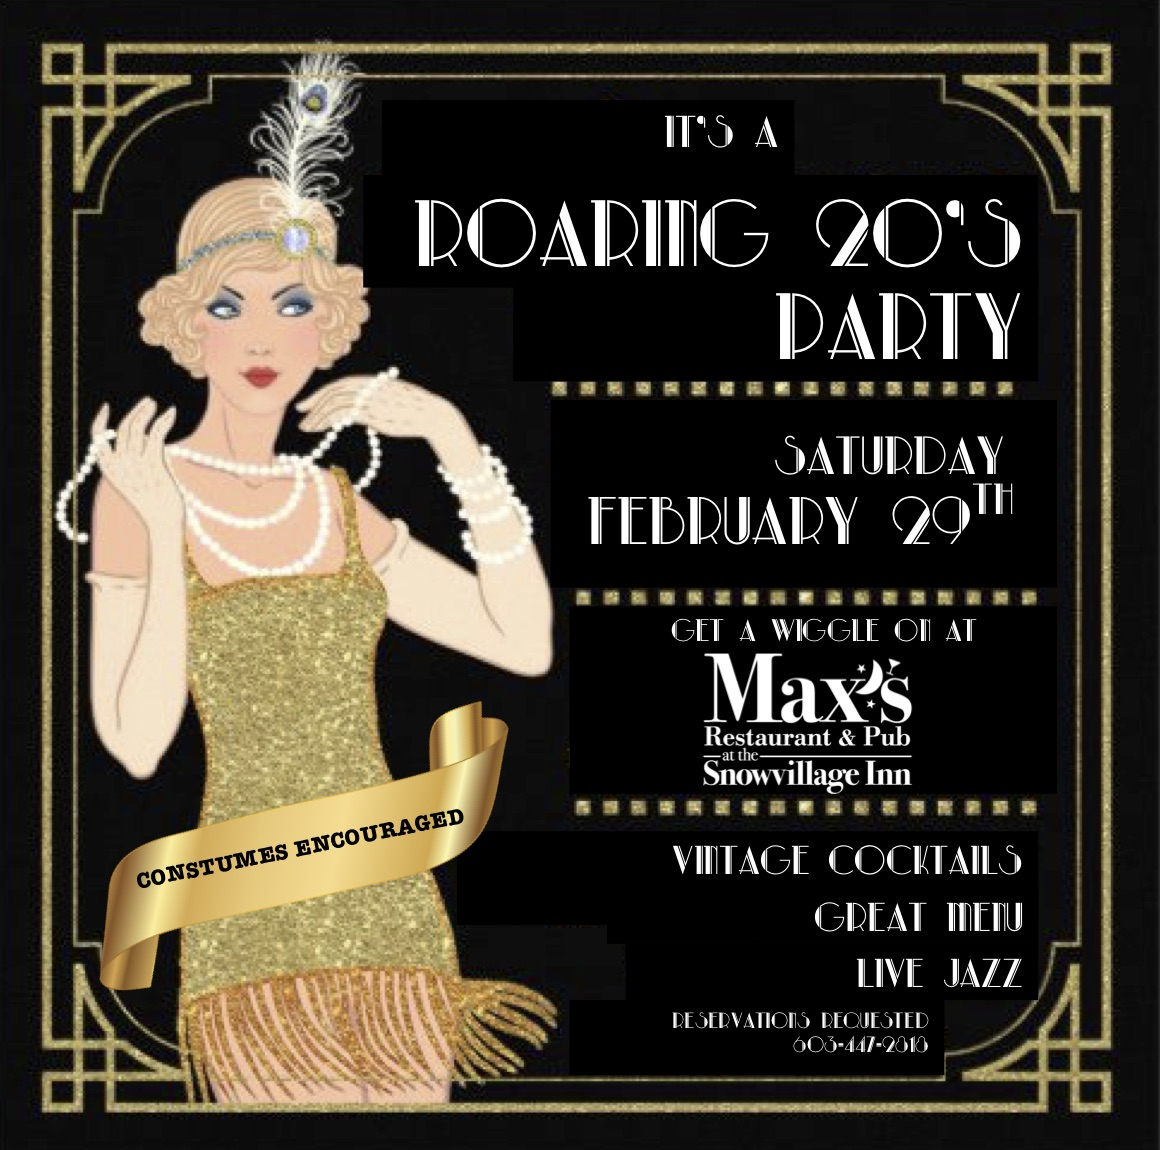 Roaring 20s Weekend Getaway & Costume Party, February 28th & 29th